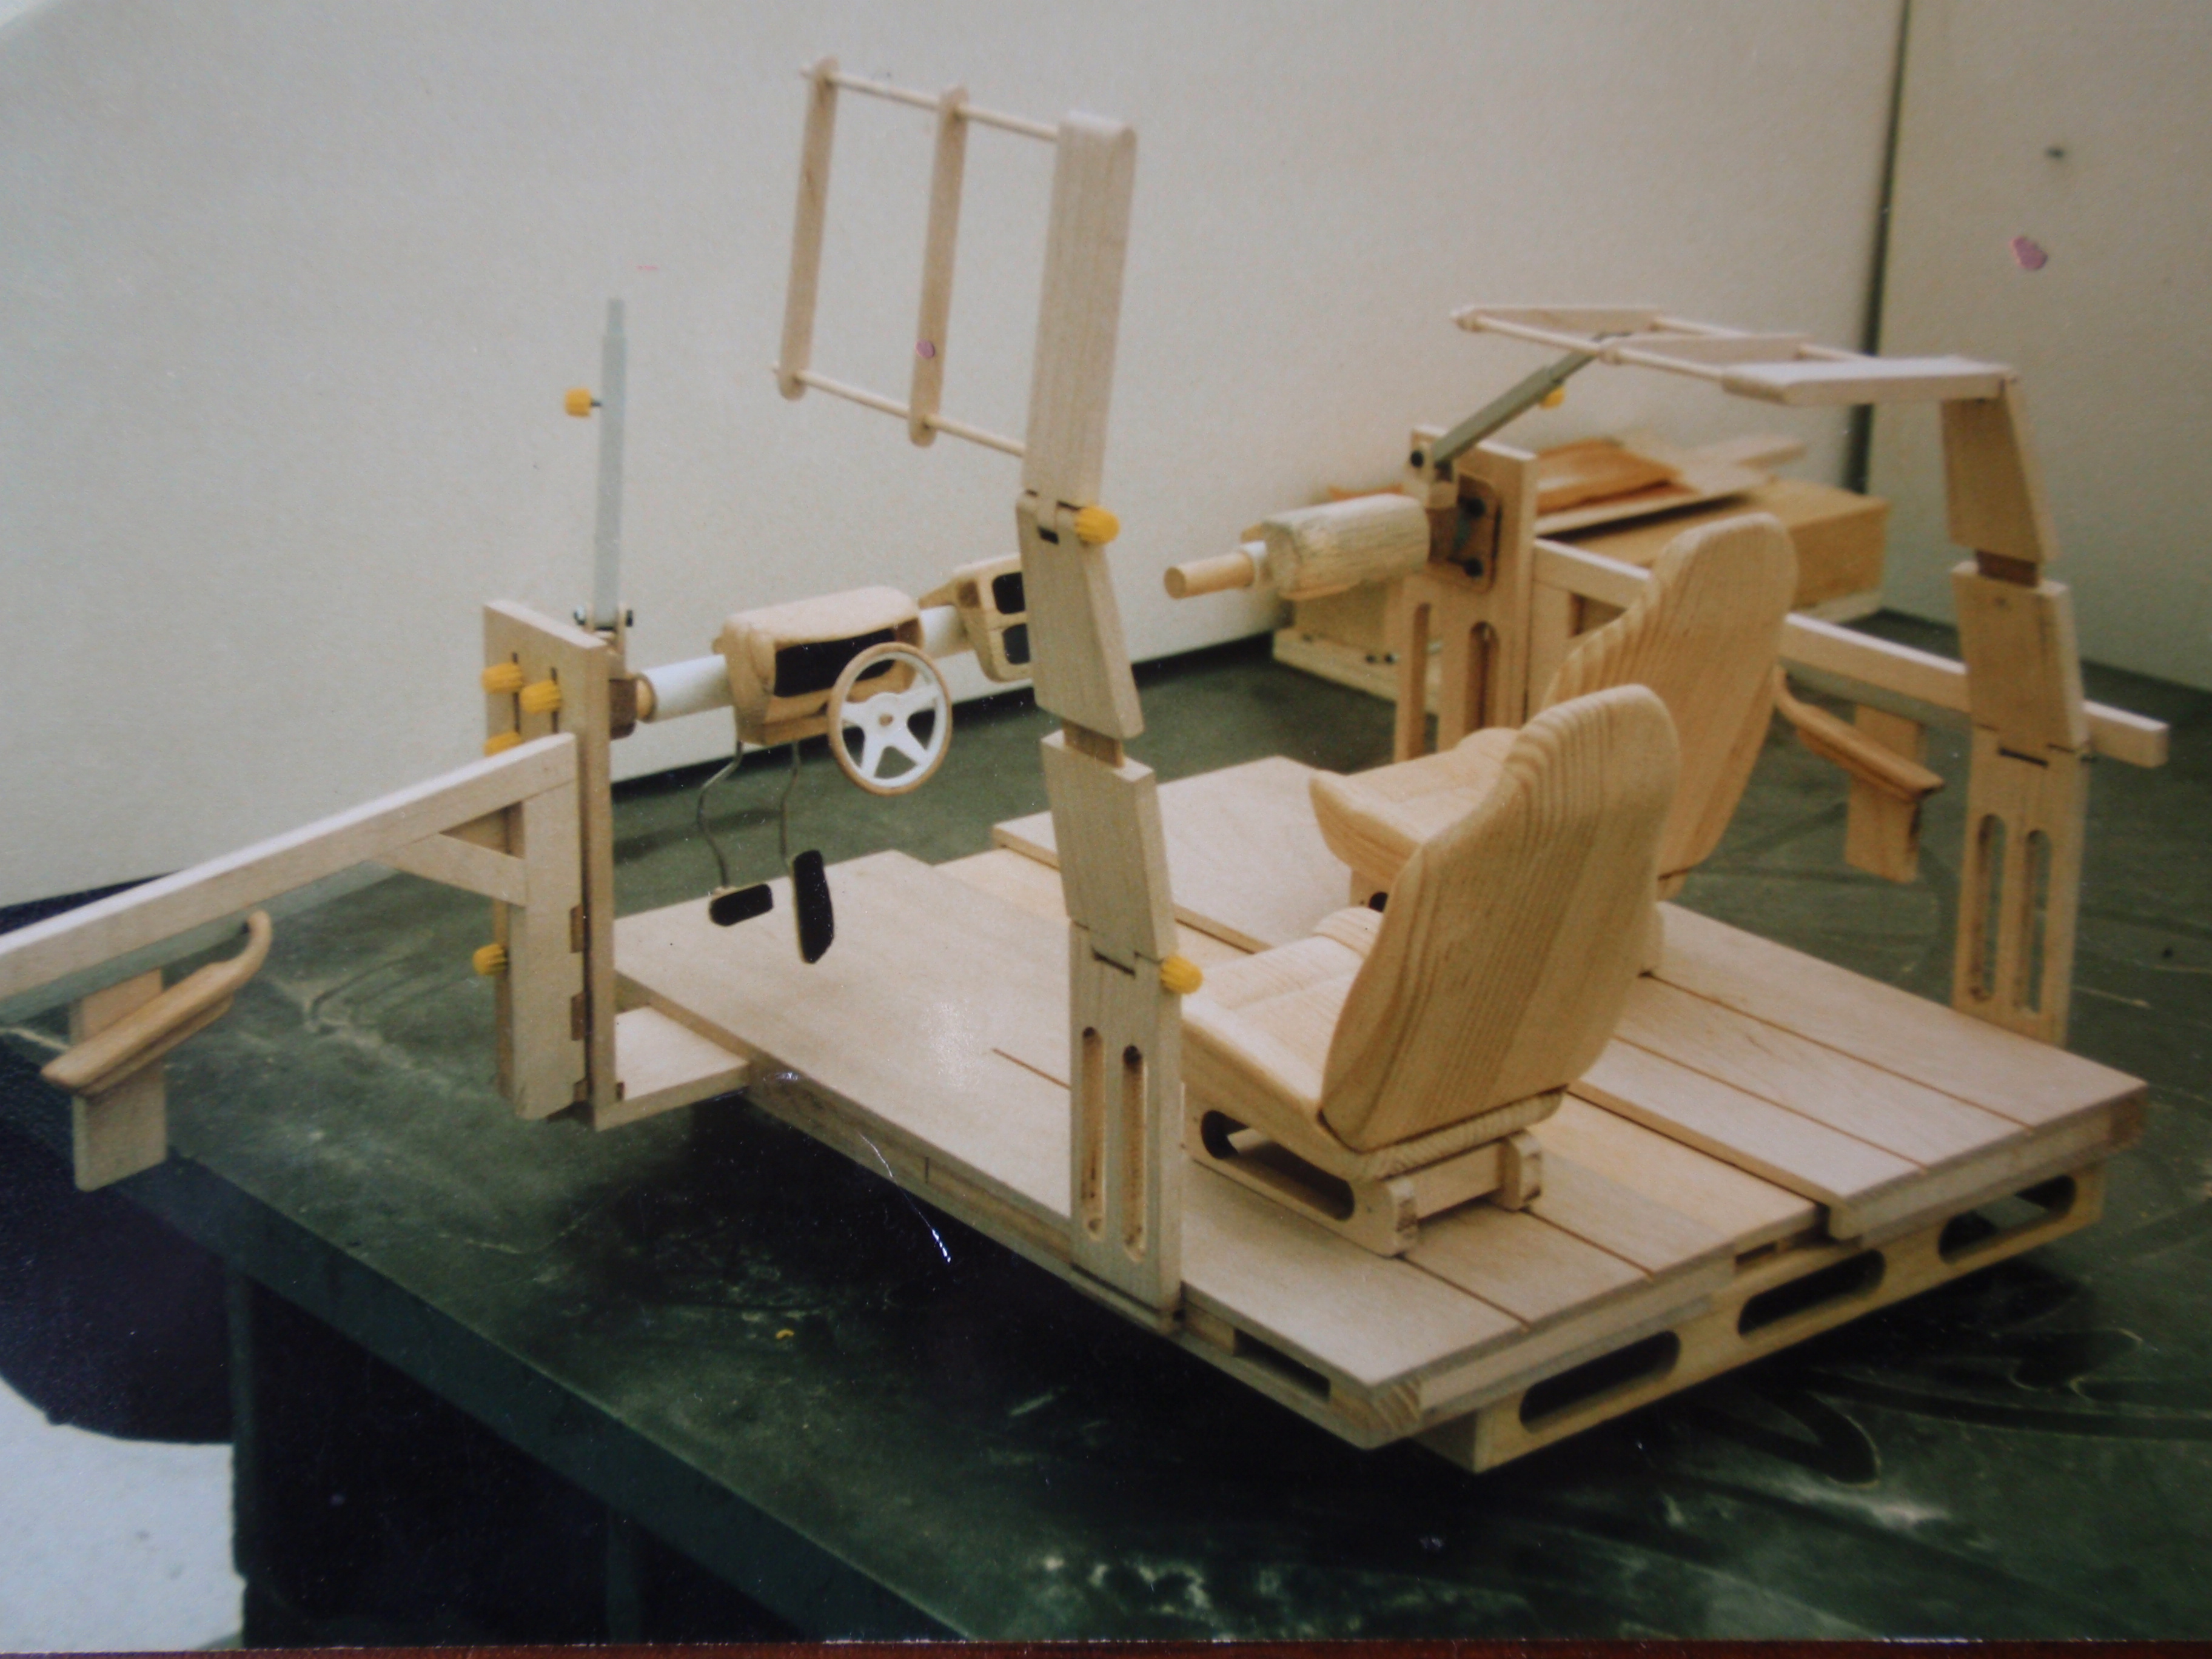 Quarter Scale Automotive Seating Buck Proposal By Todd